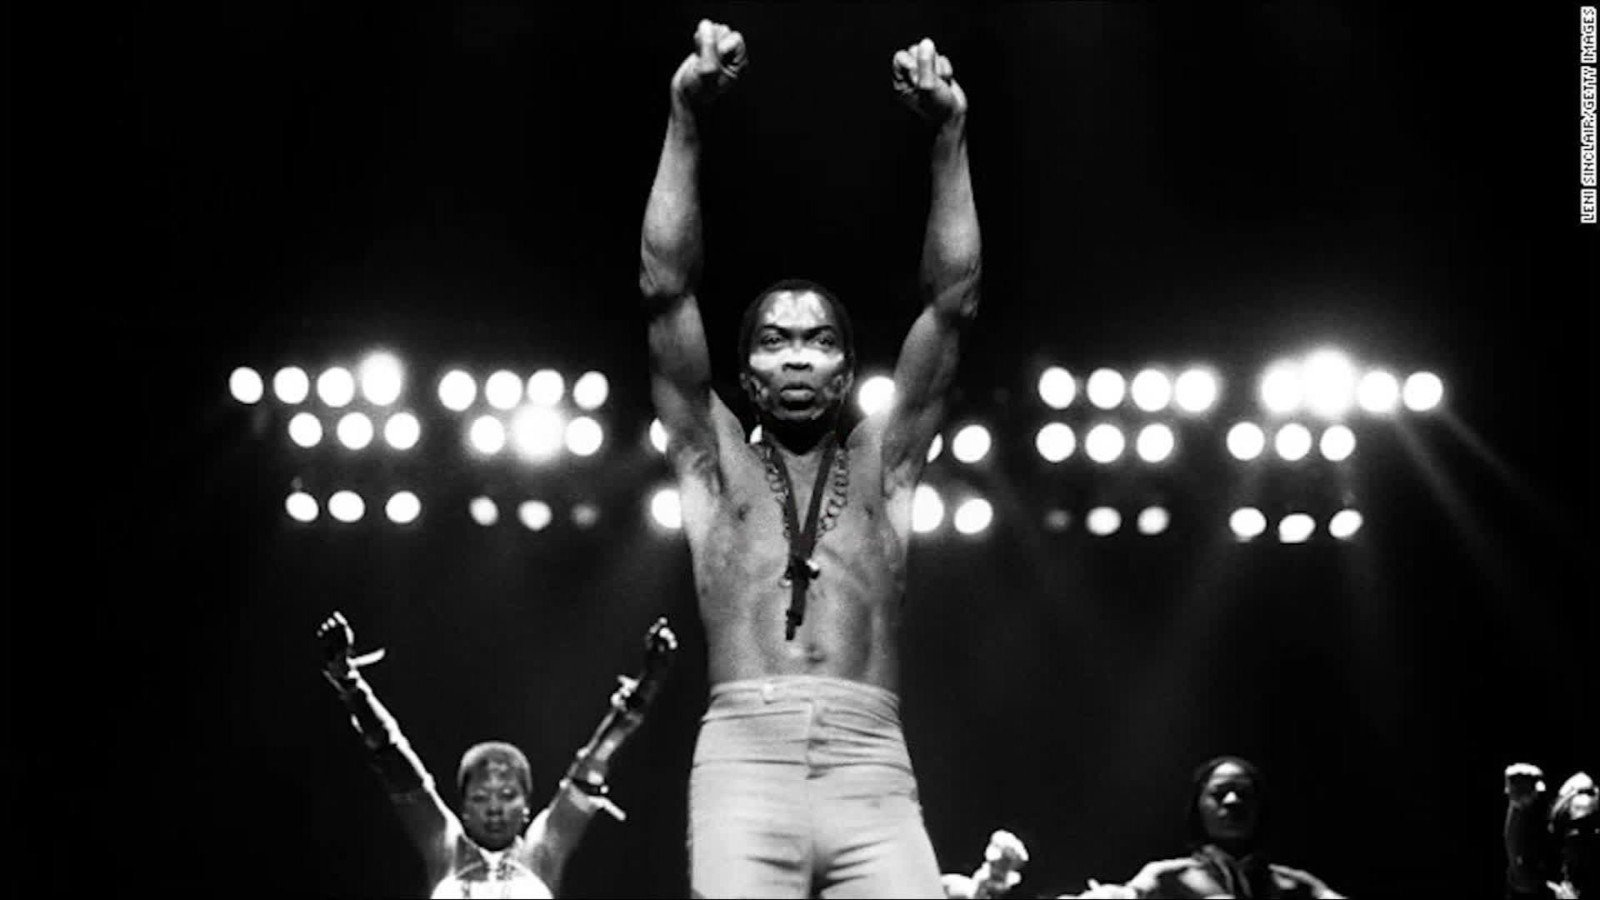 Fela Kuti – A Brief Life Story – by Sister Evelyn